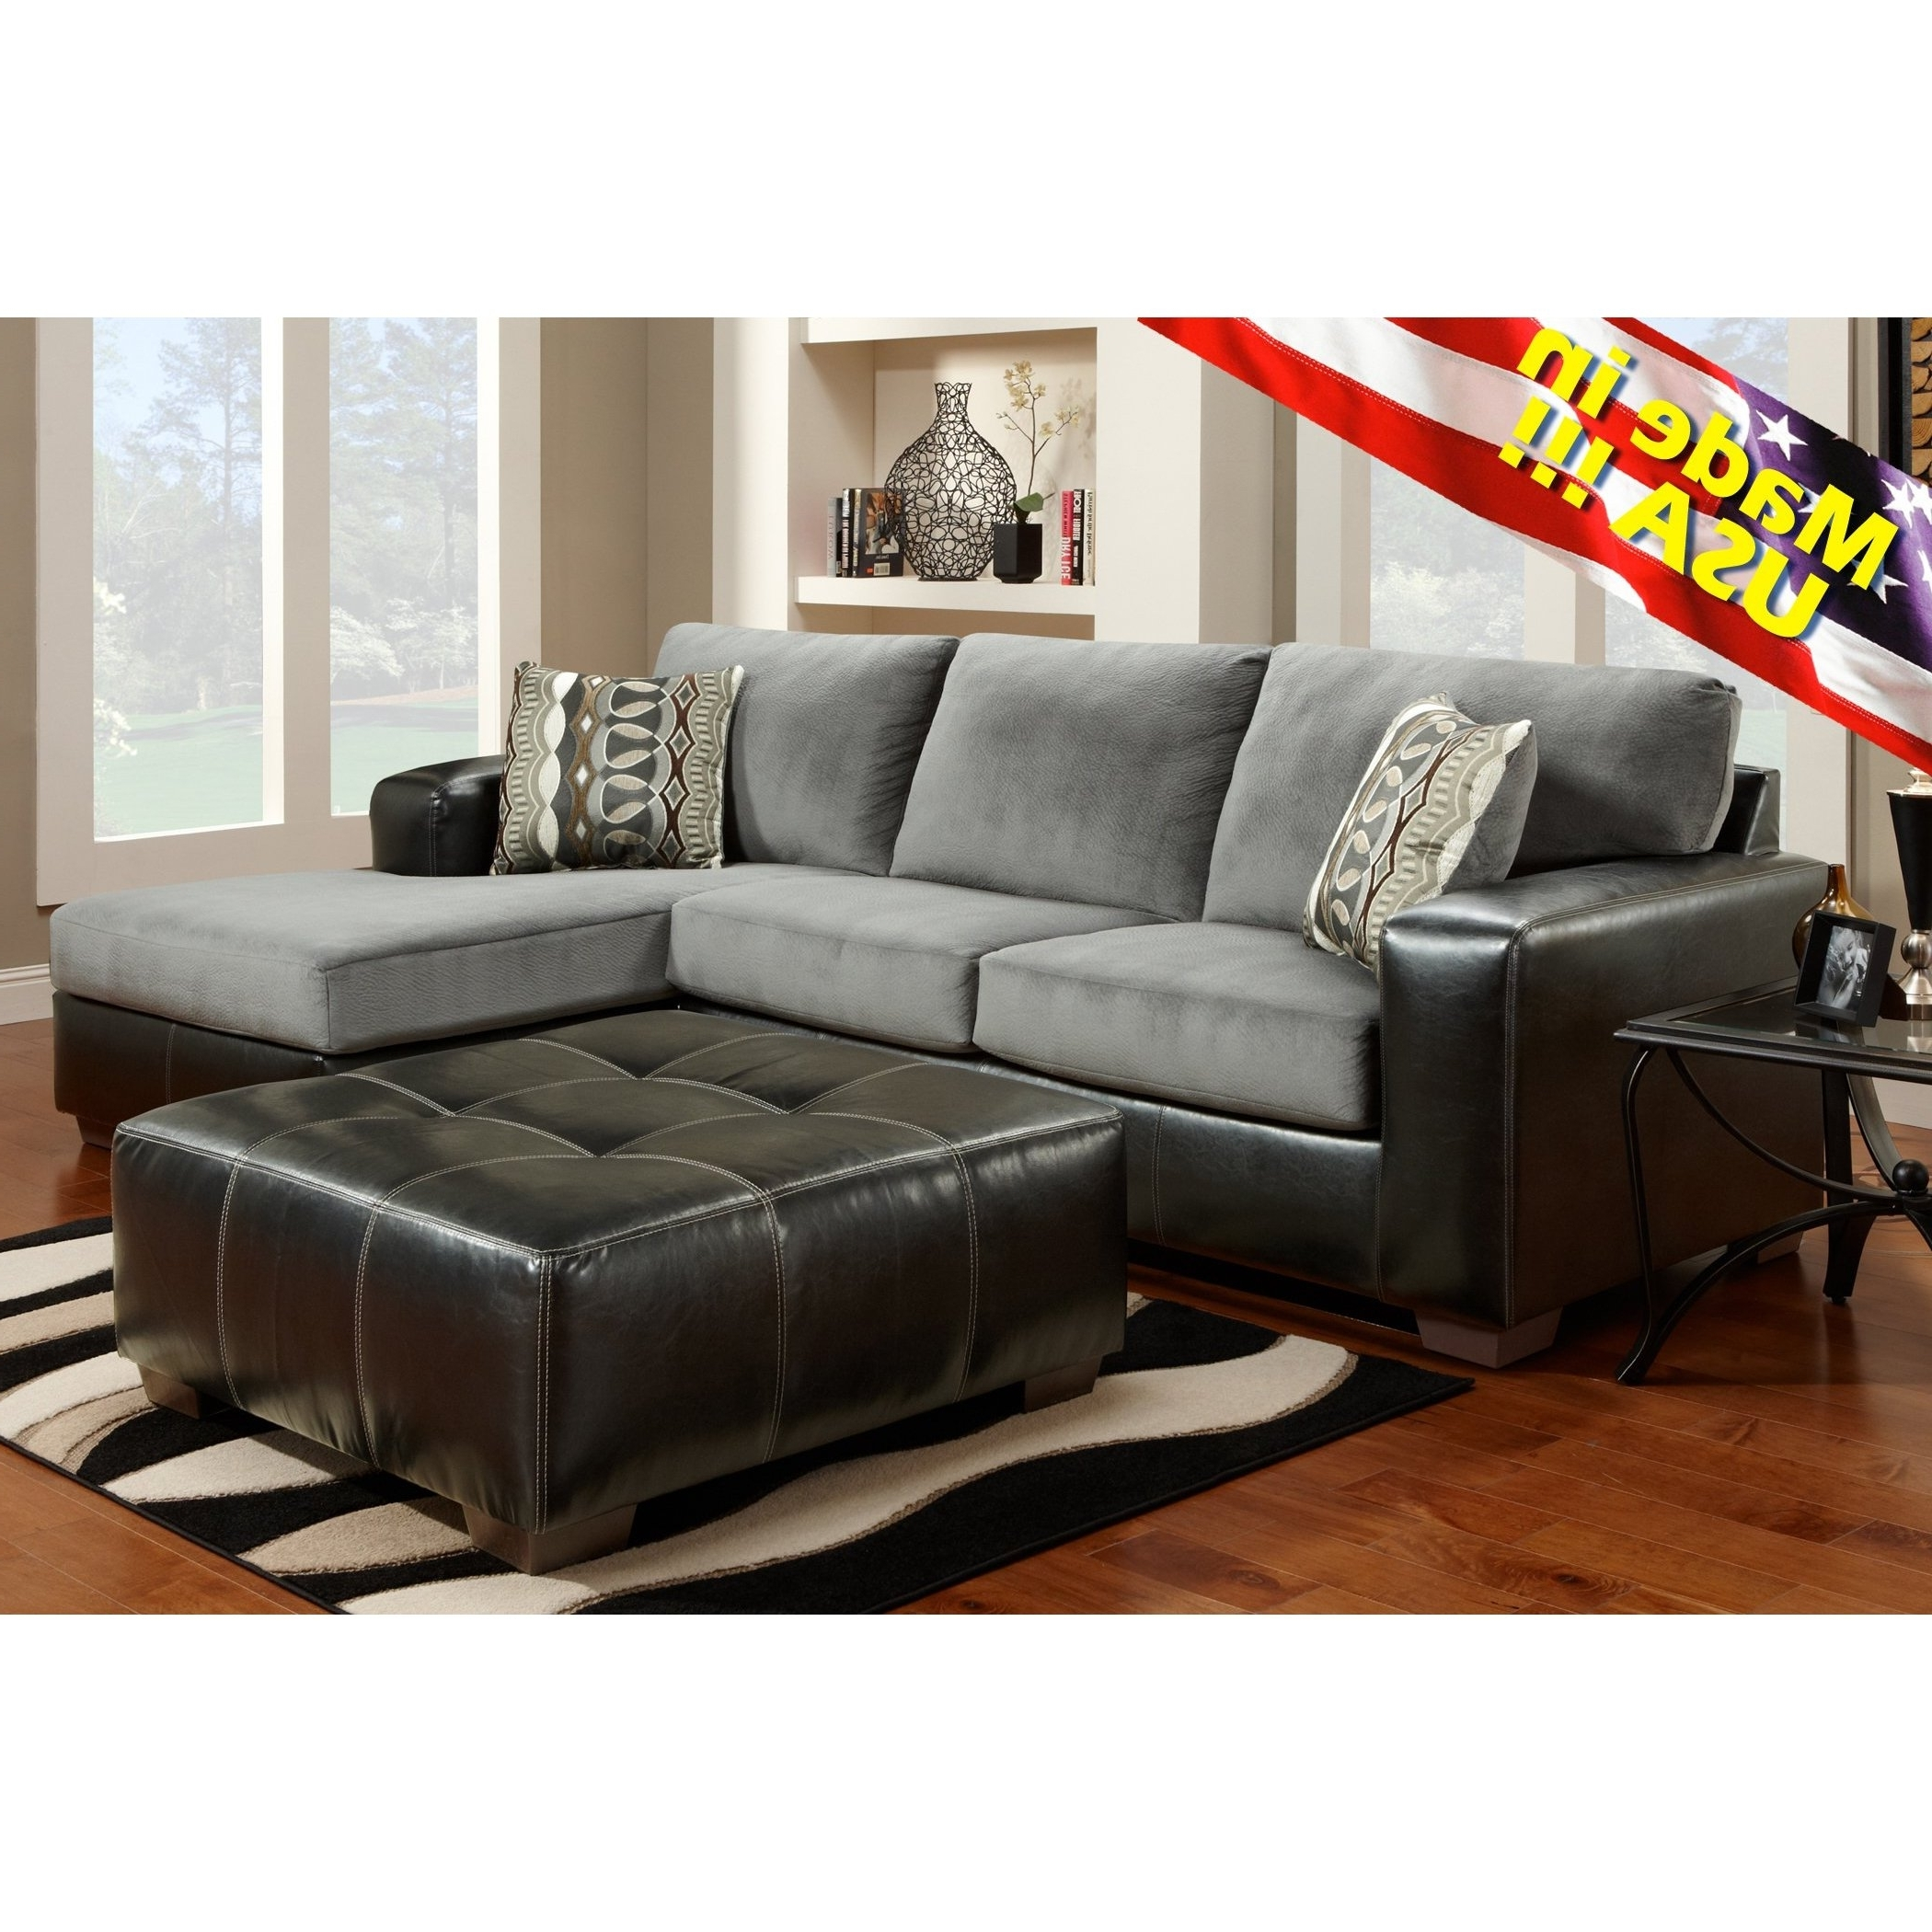 Well Liked Made In Usa Sectional Sofas With Cumulus Black Gray Two Toned Sectional Sofa Chaise Set, Made In (View 20 of 20)